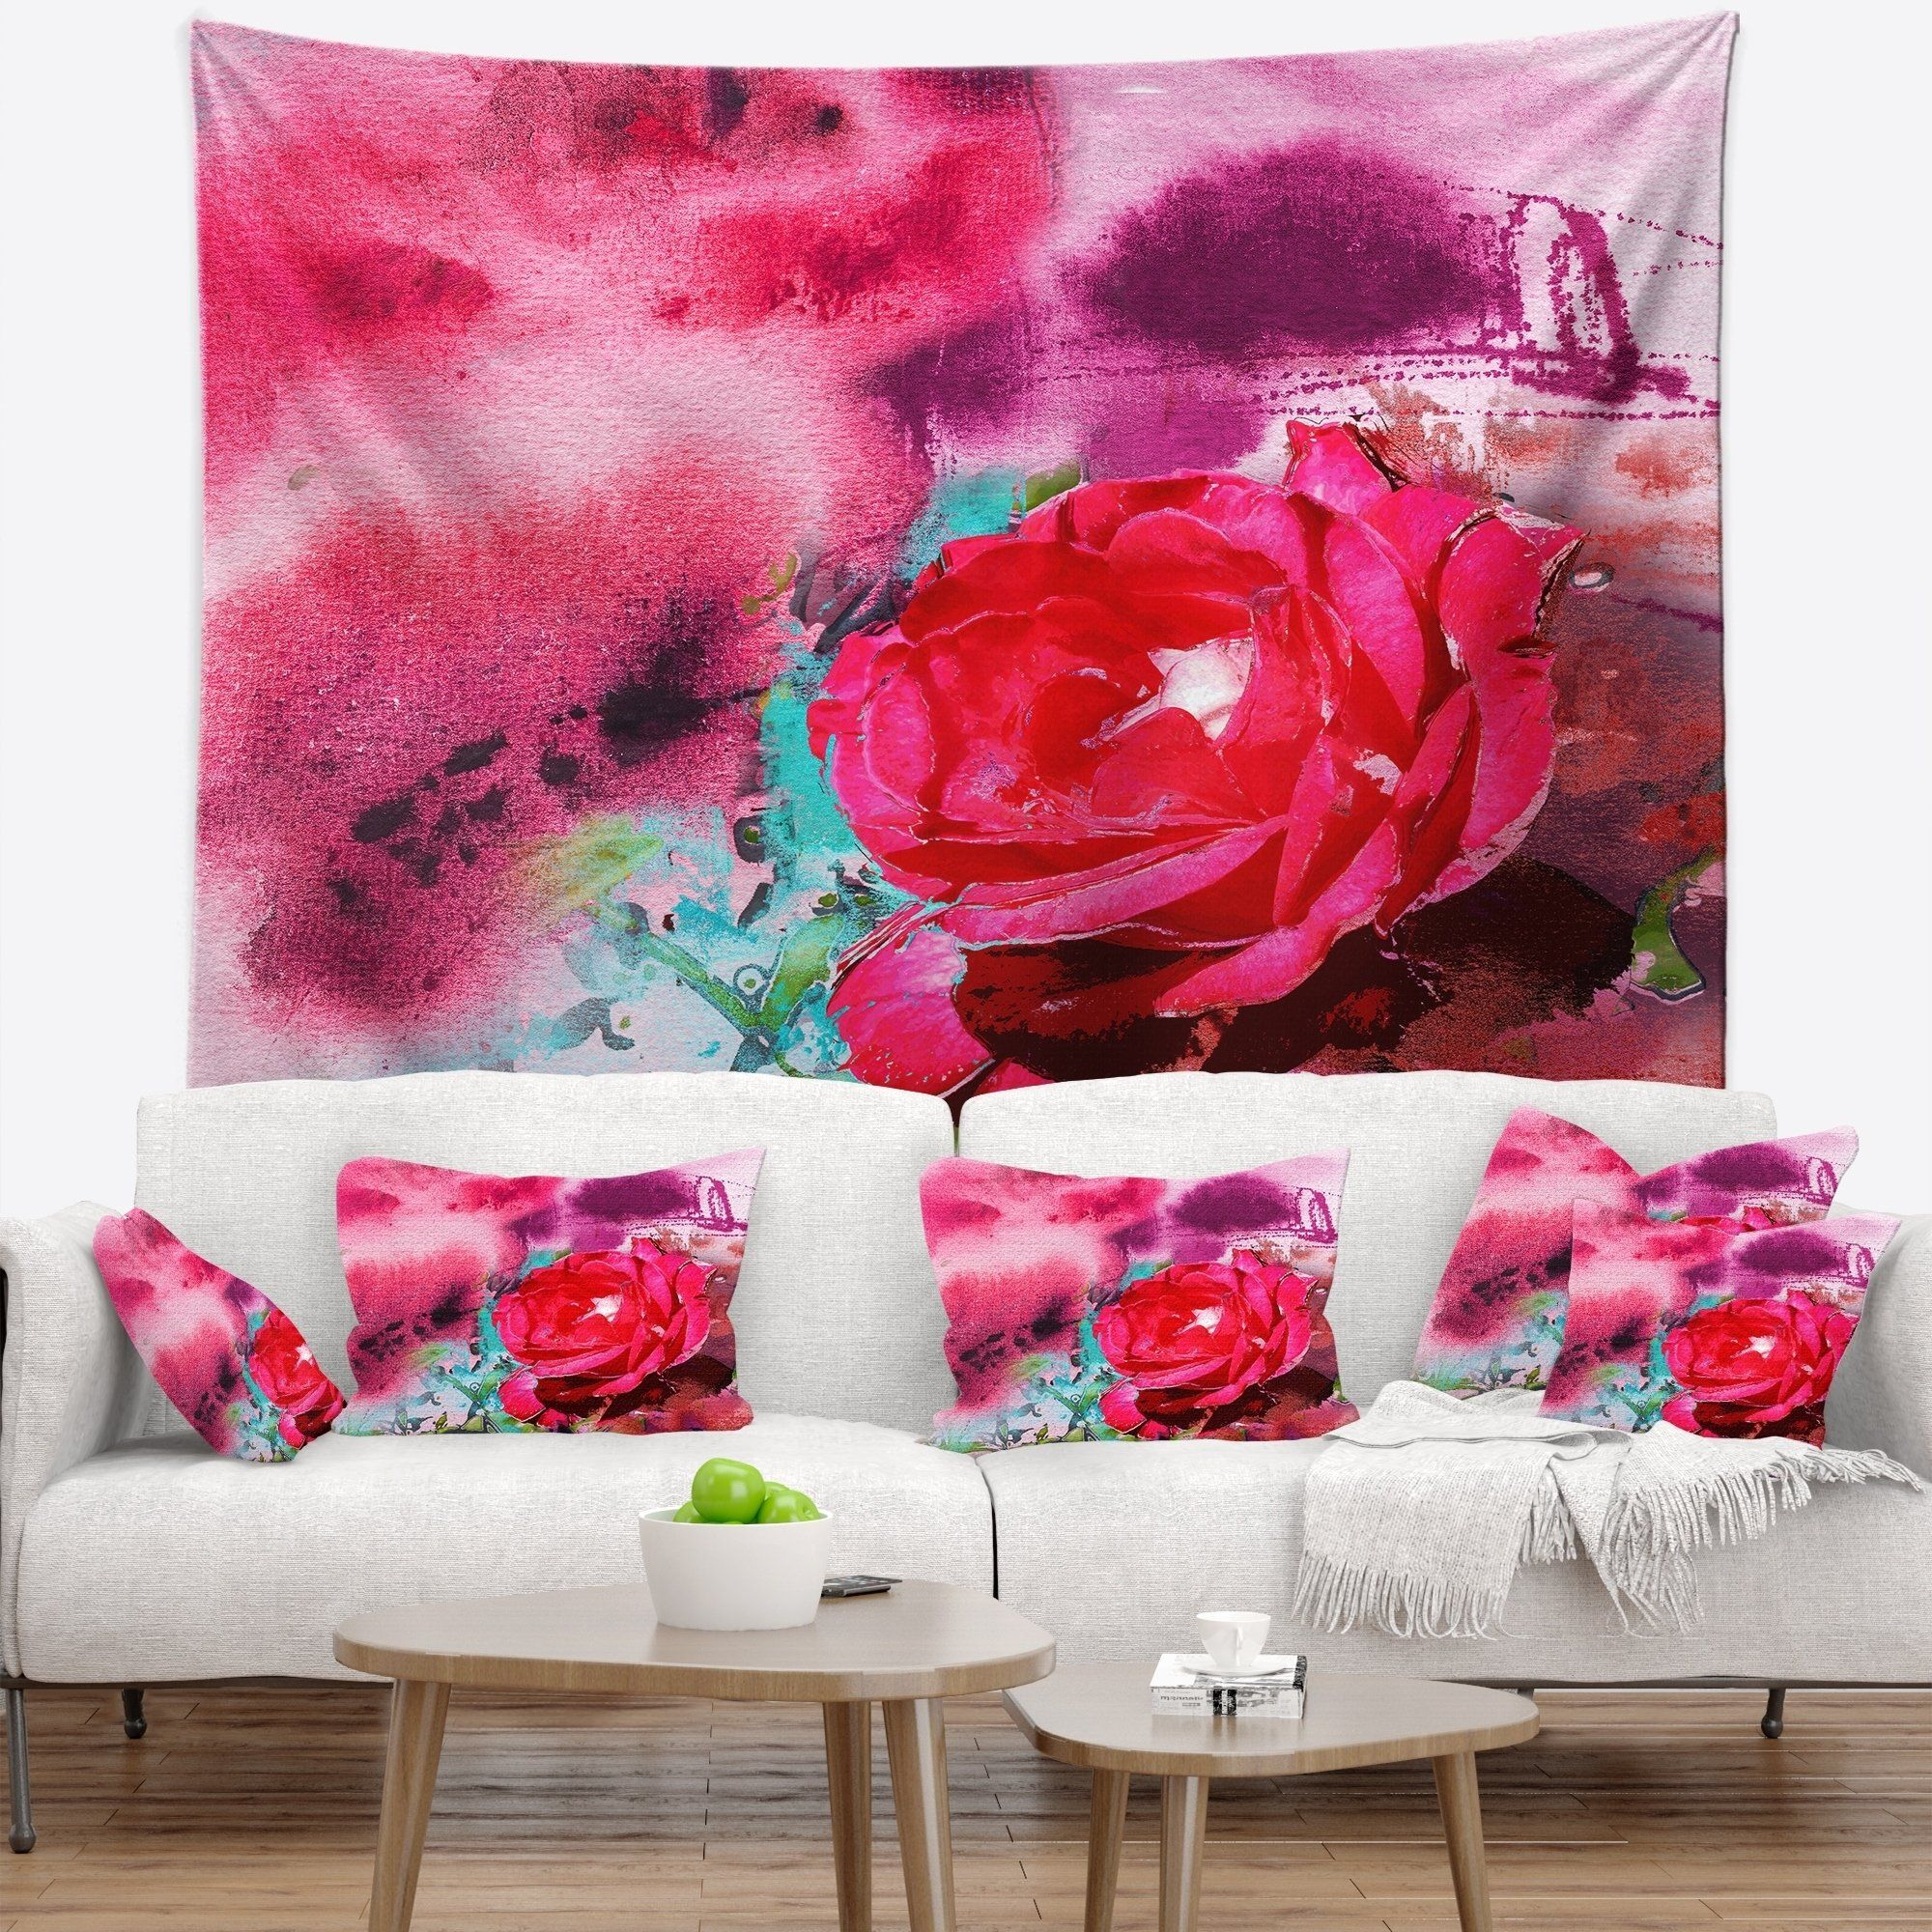 Designart Red Rose On Abstract Paper Floral Wall Tapestry